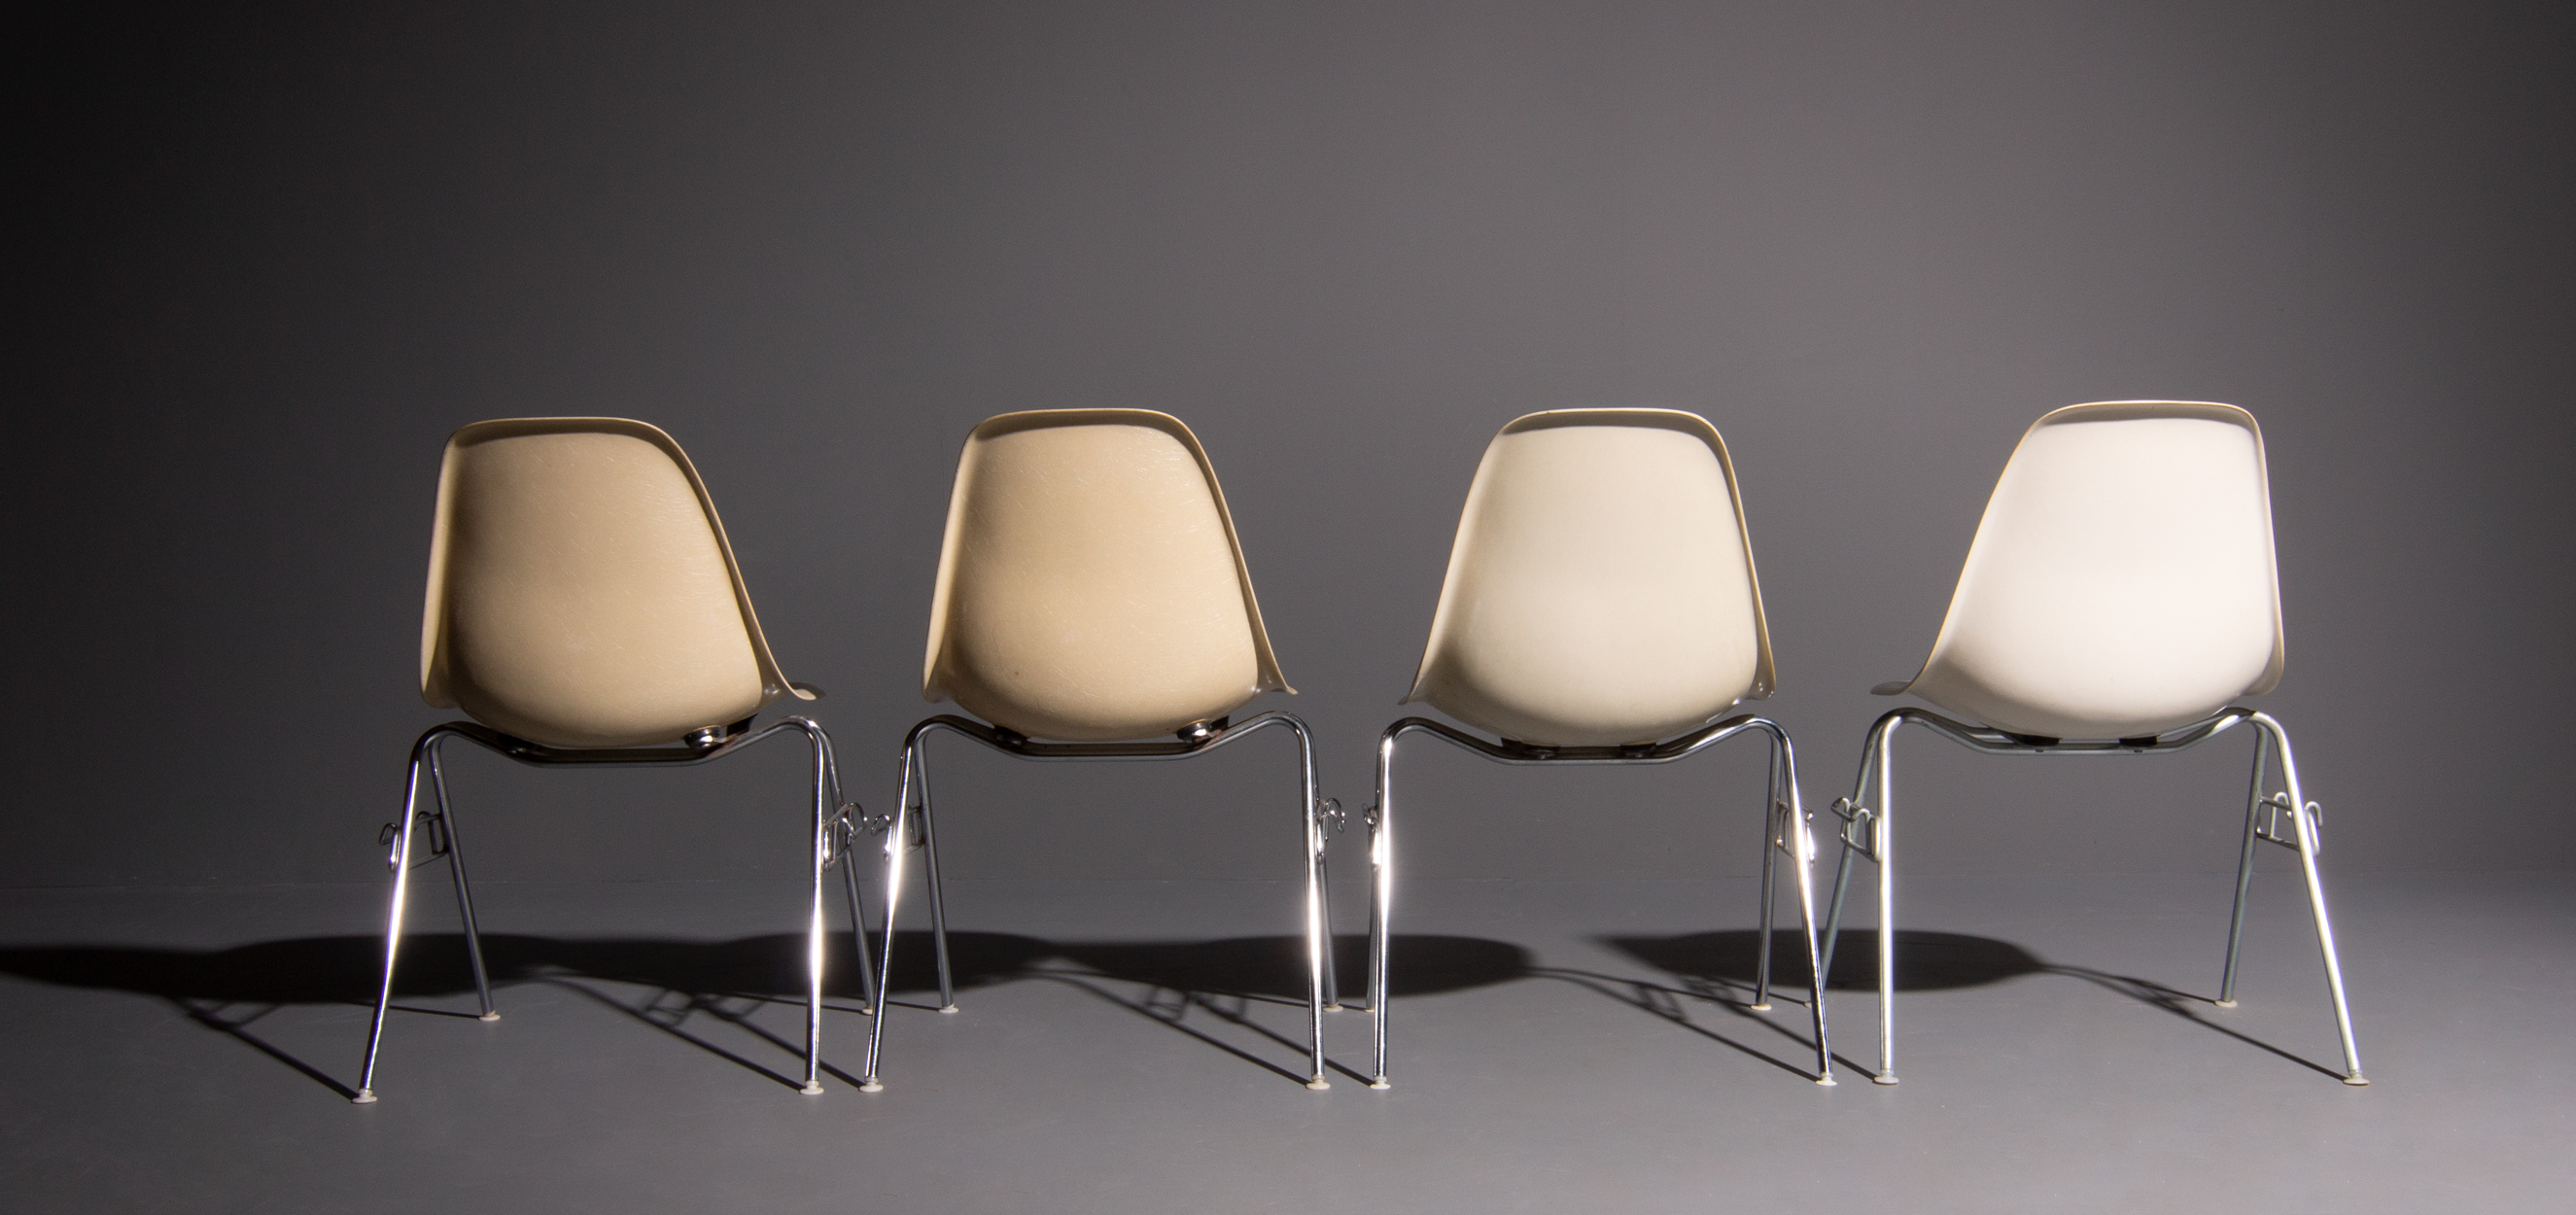 Retro Eames Stoelen.Vintage Eames Chairs Produced By Herman Miller In Different Colors White